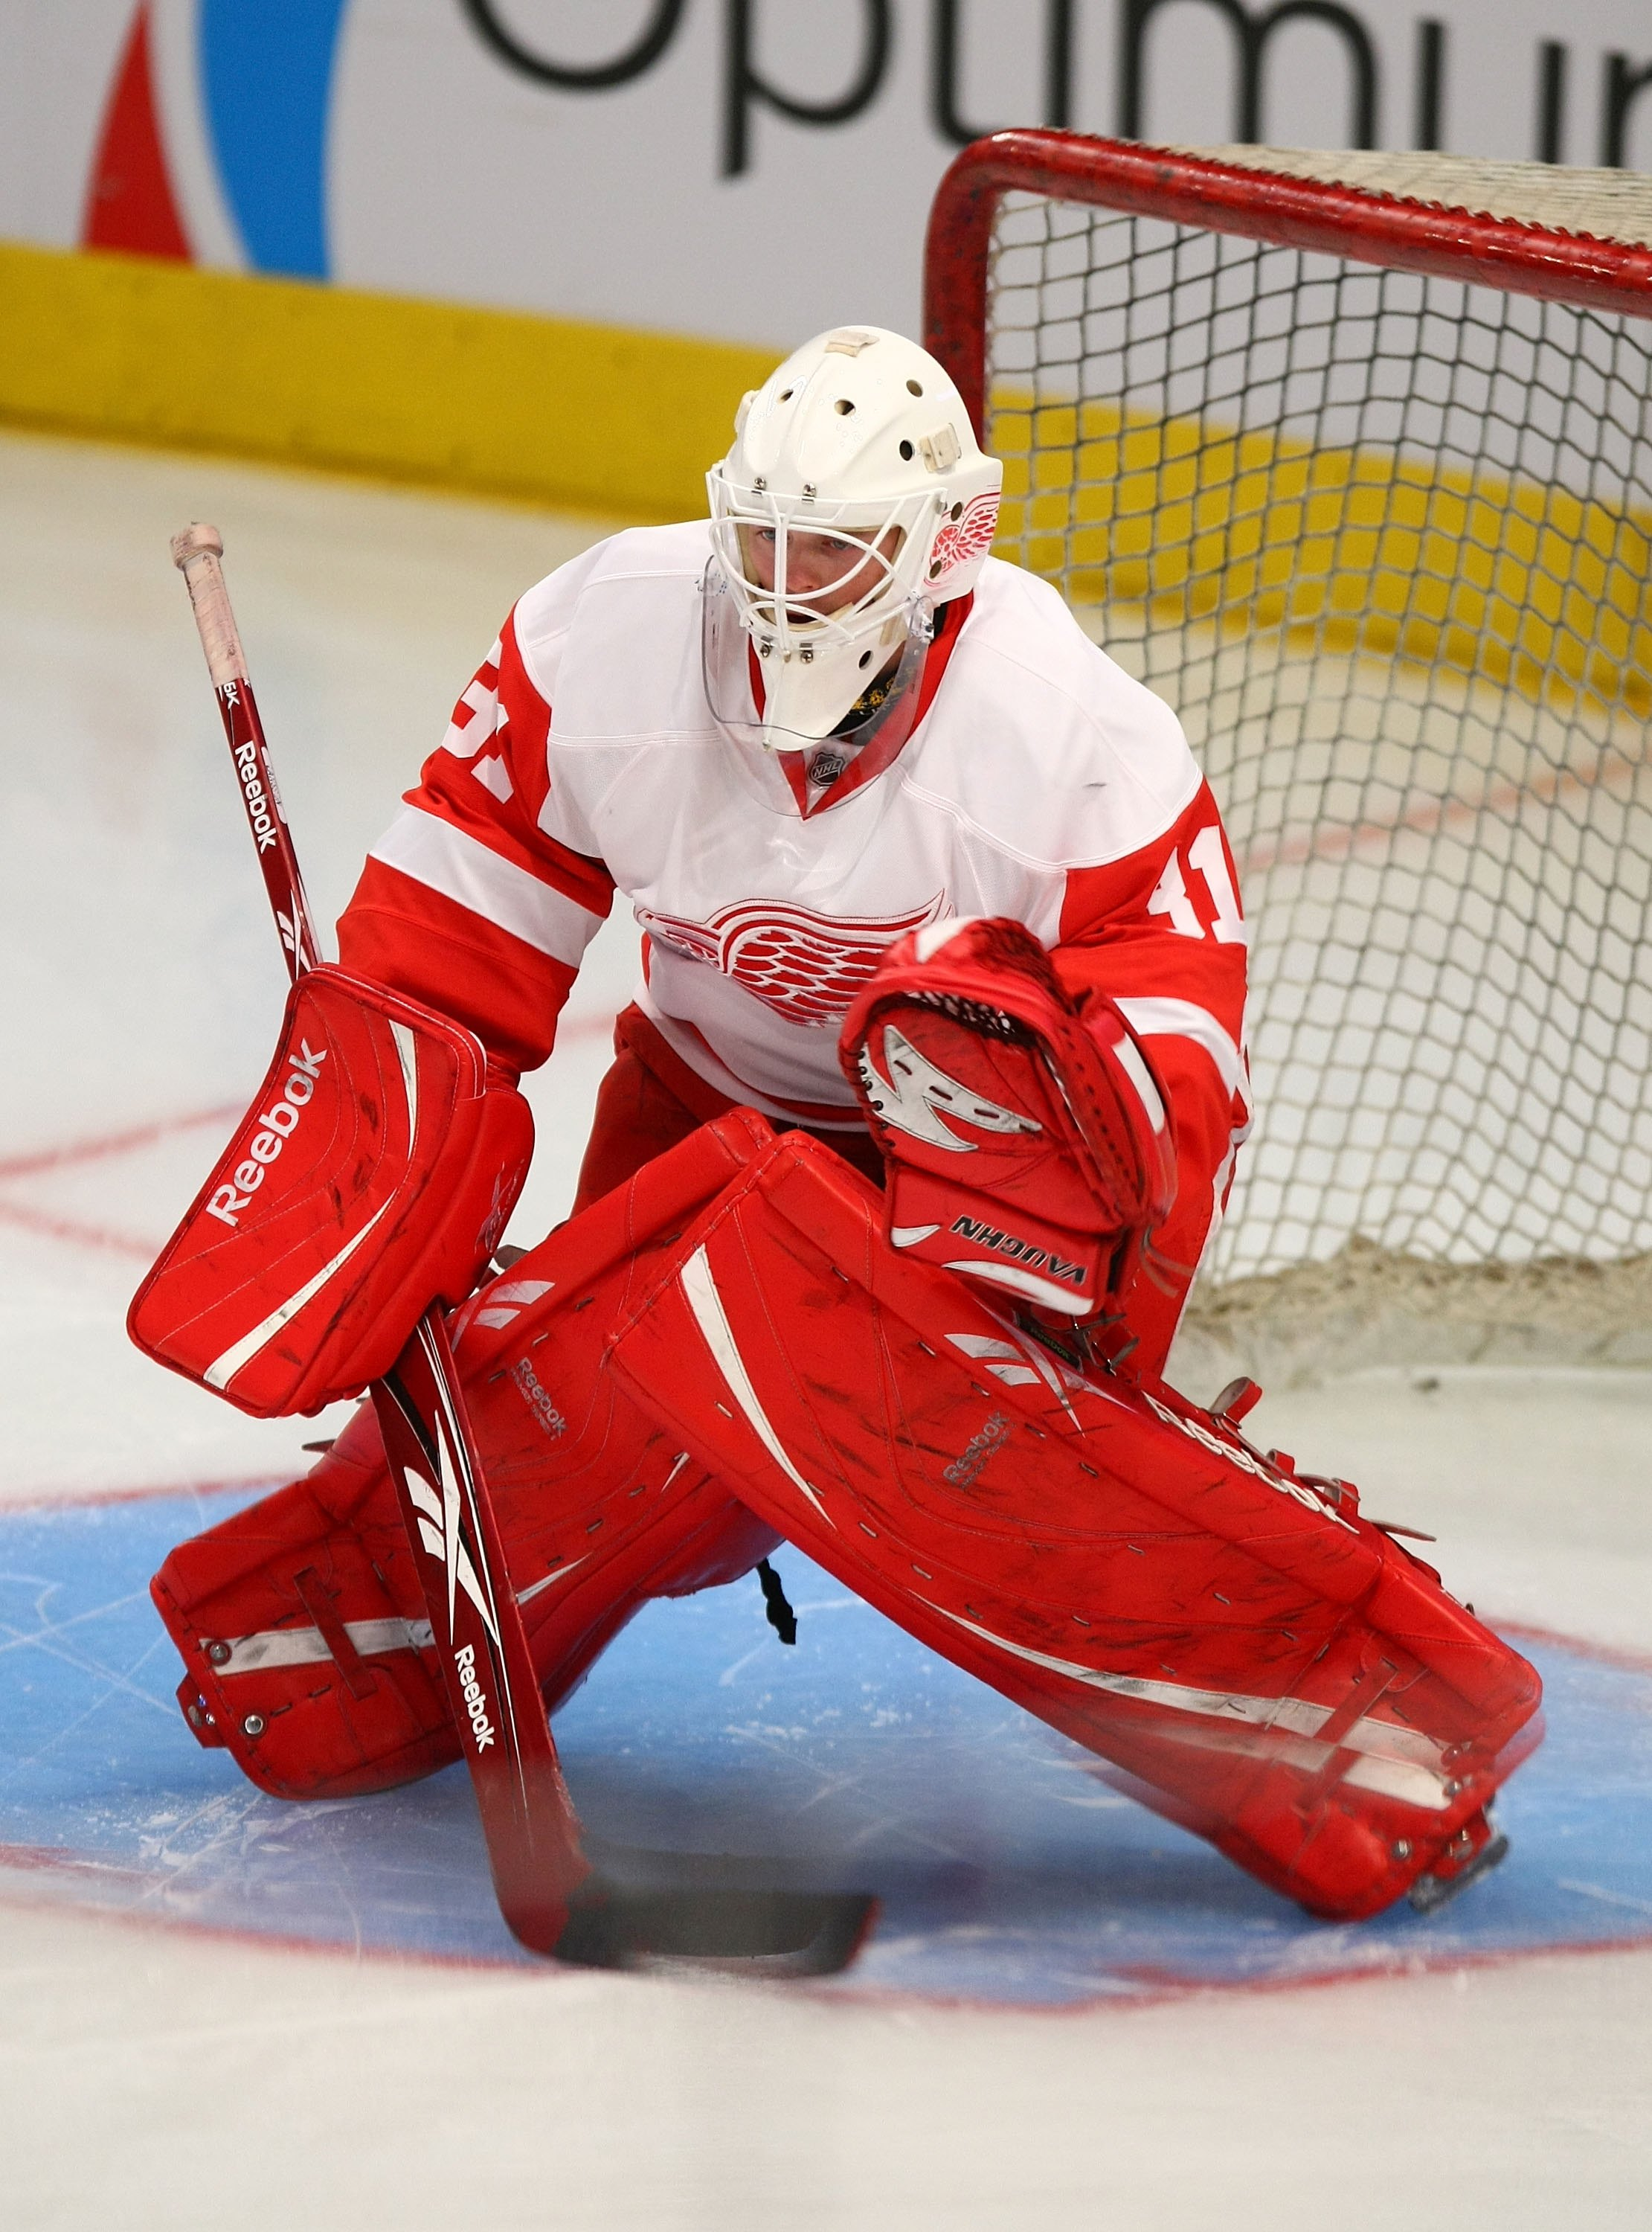 NEW YORK - SEPTEMBER 21:  Daniel Larsson #31 of the Detroit Red Wings tends net in warmups prior to the preseason game against the New York Rangers  at Madison Square Garden on September 21, 2009 in New York, New York.  (Photo by Bruce Bennett/Getty Image